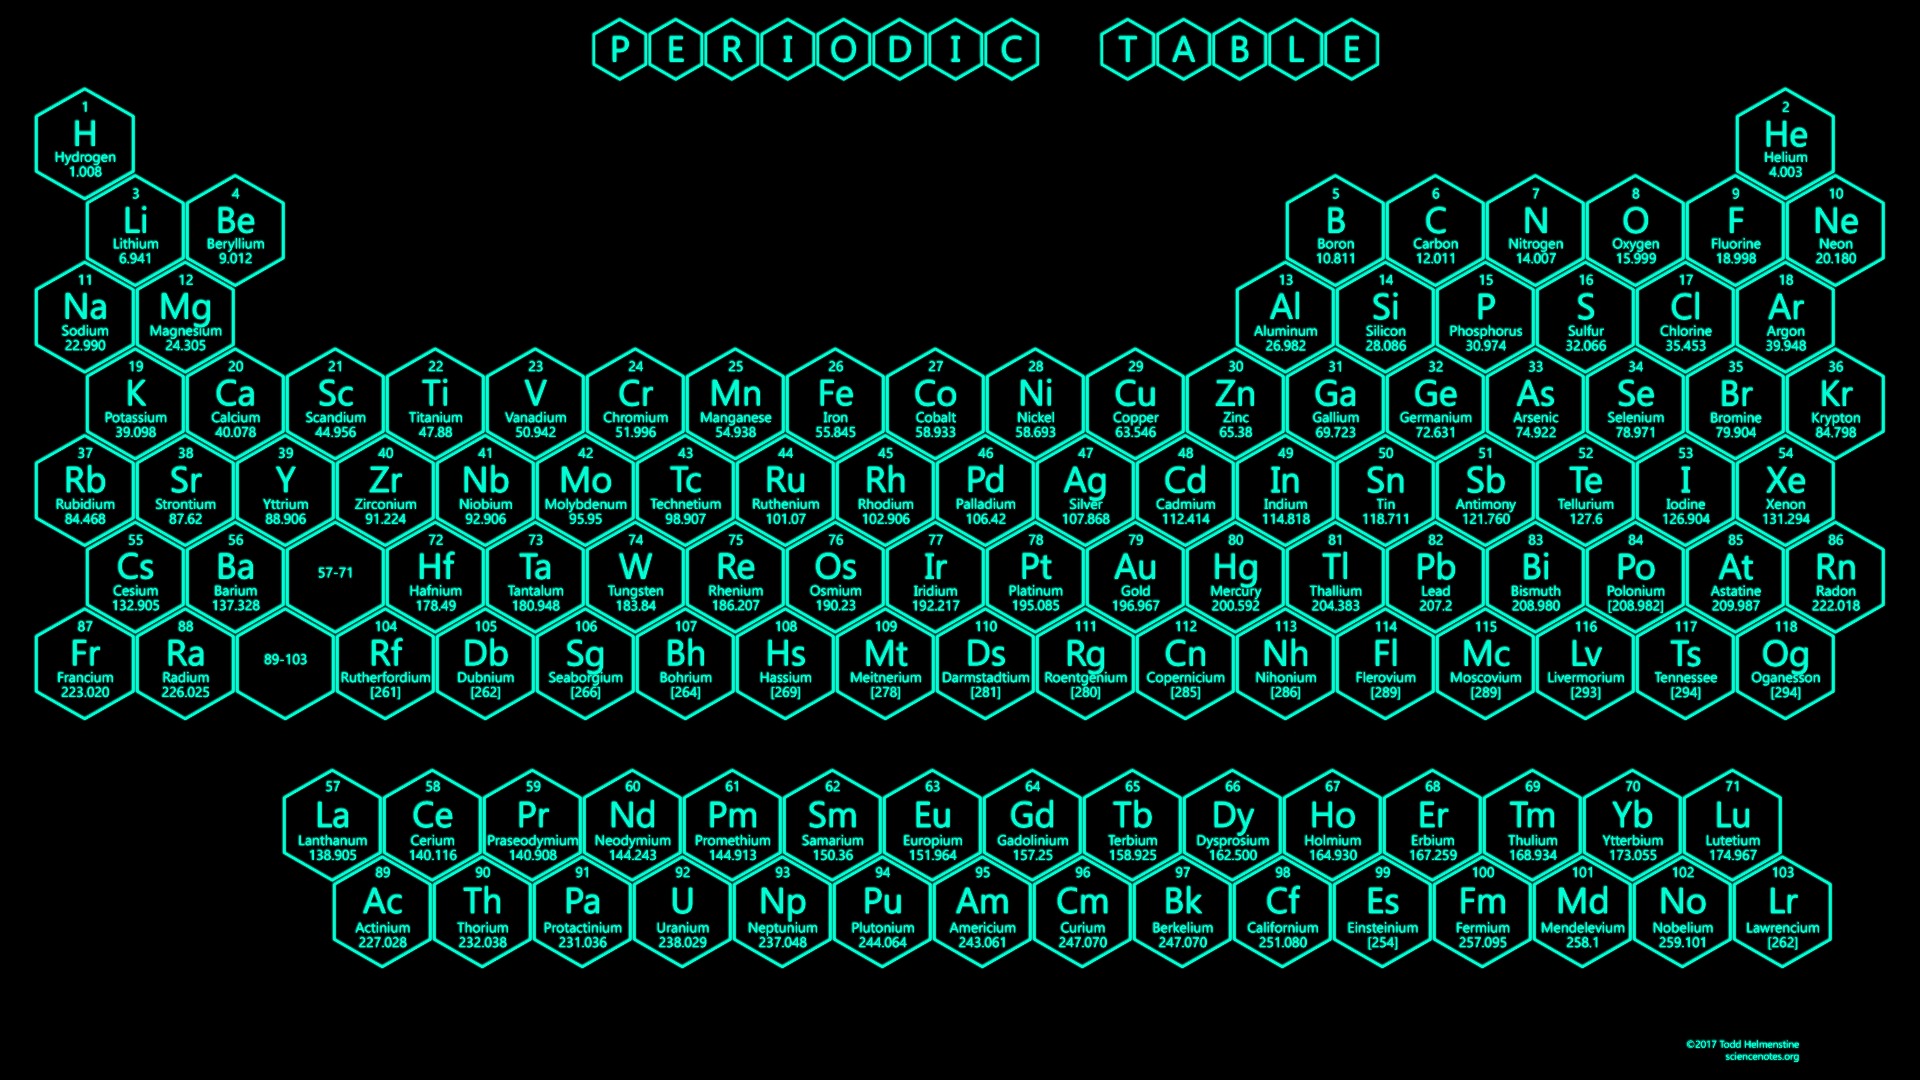 Neon hexagon periodic table wallpapers hd periodic table wallpapers aqua neon honeycomb periodic table 2017 edition gamestrikefo Images